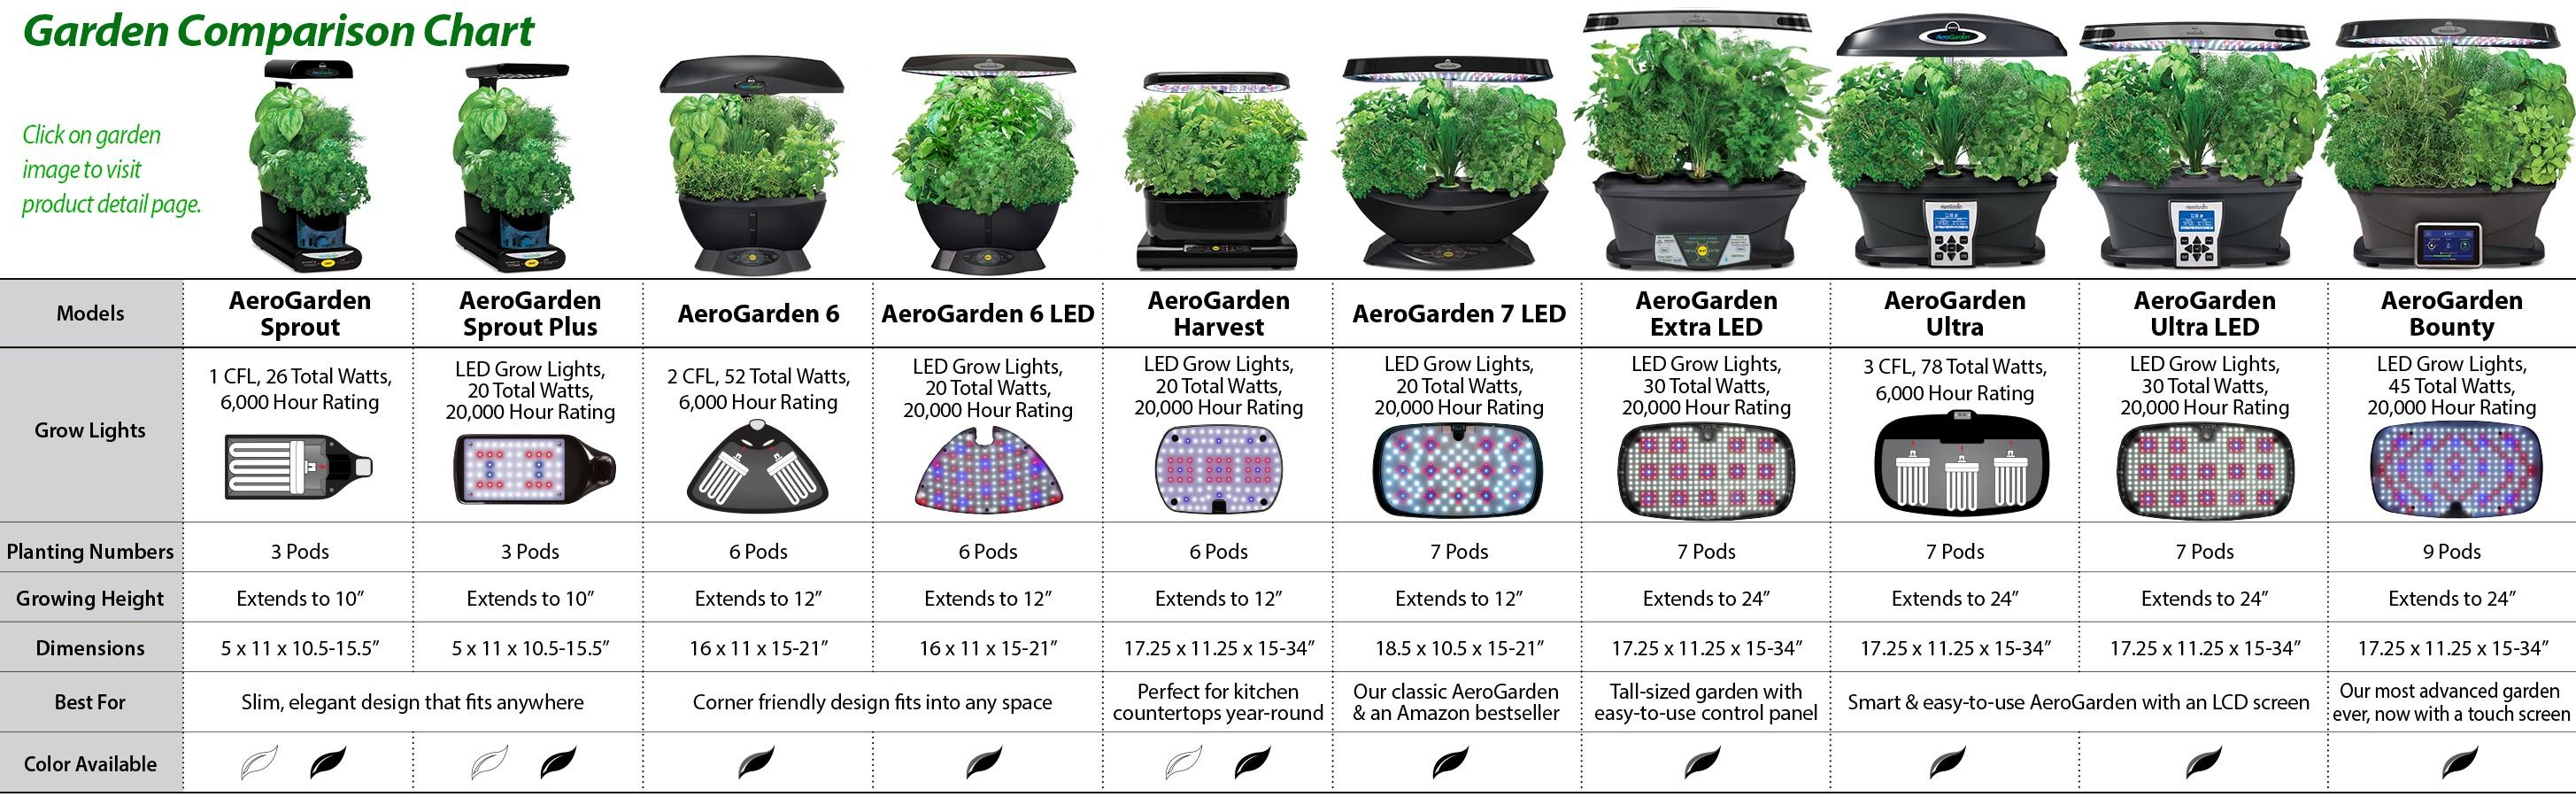 Cheapest amazon herbs - According To This Chart